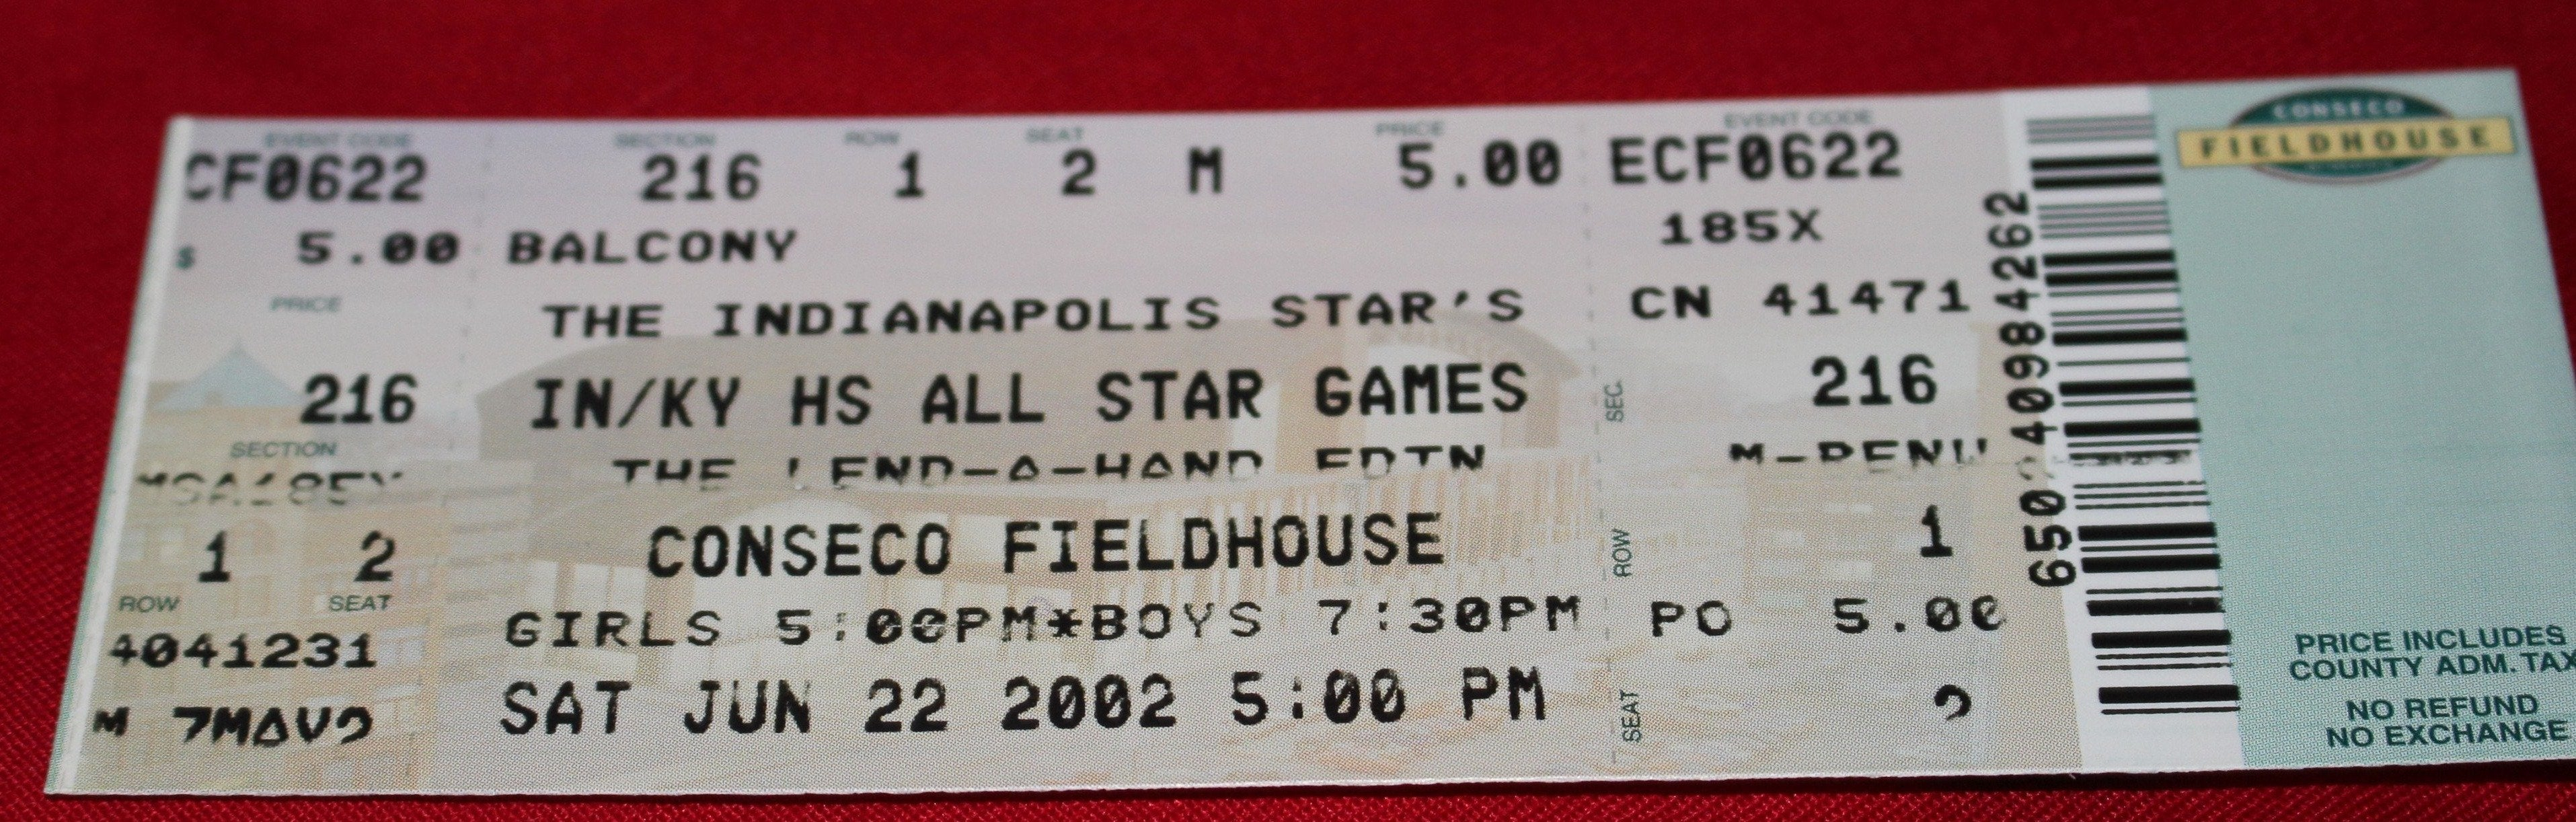 2002 Indiana vs Kentucky High School Basketball All Star Game Ticket